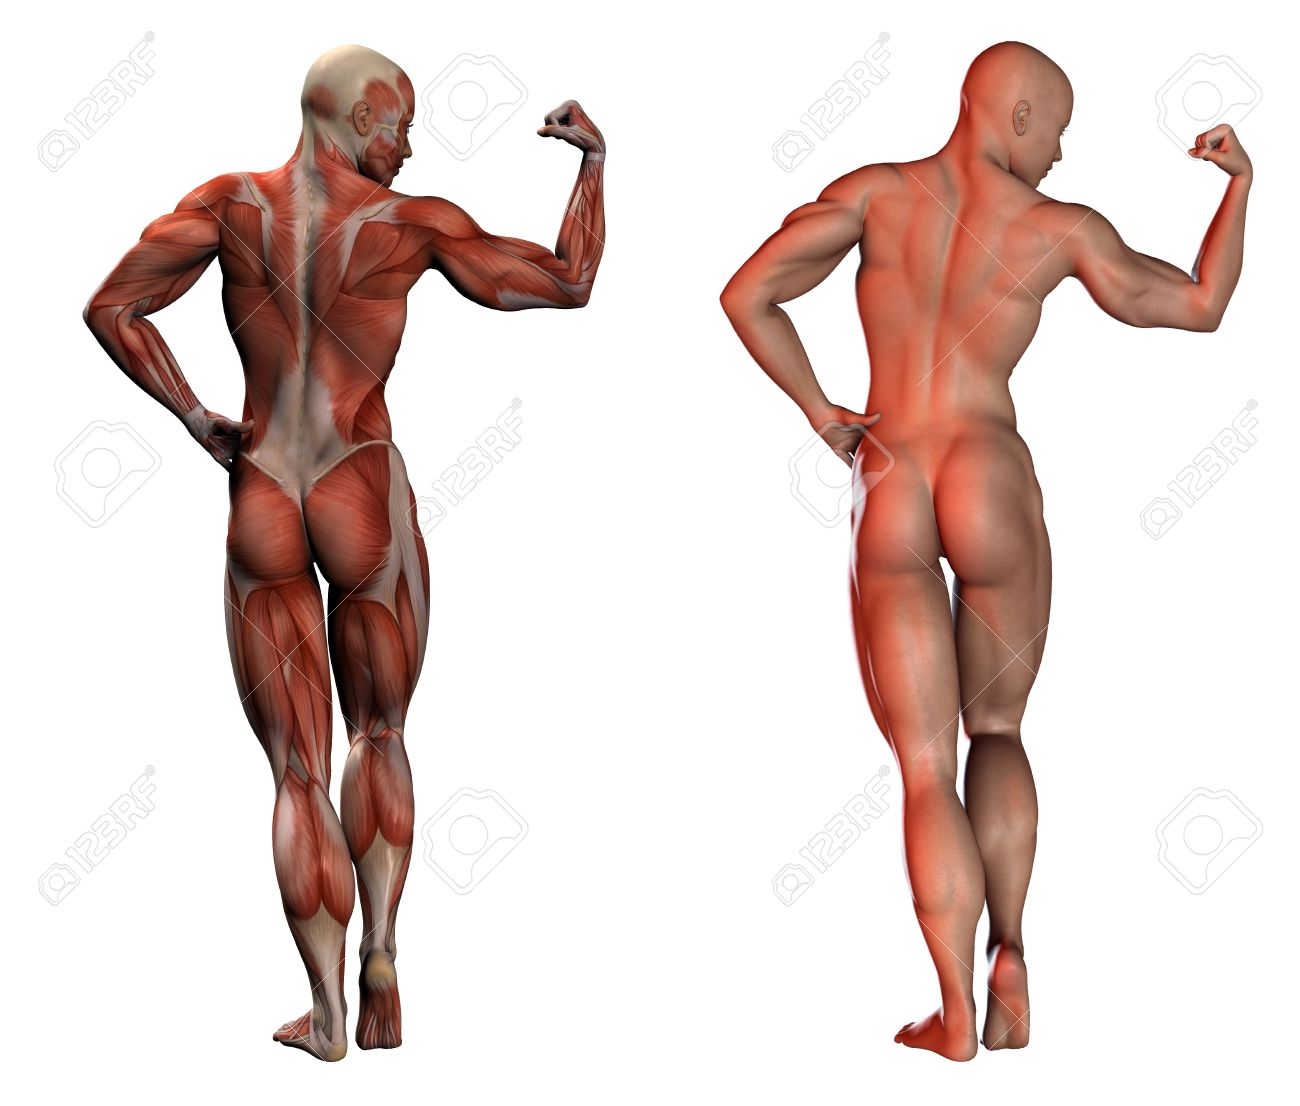 3d Image Of Human Muscles - Anatomy And Normal Stock Photo, Picture ...